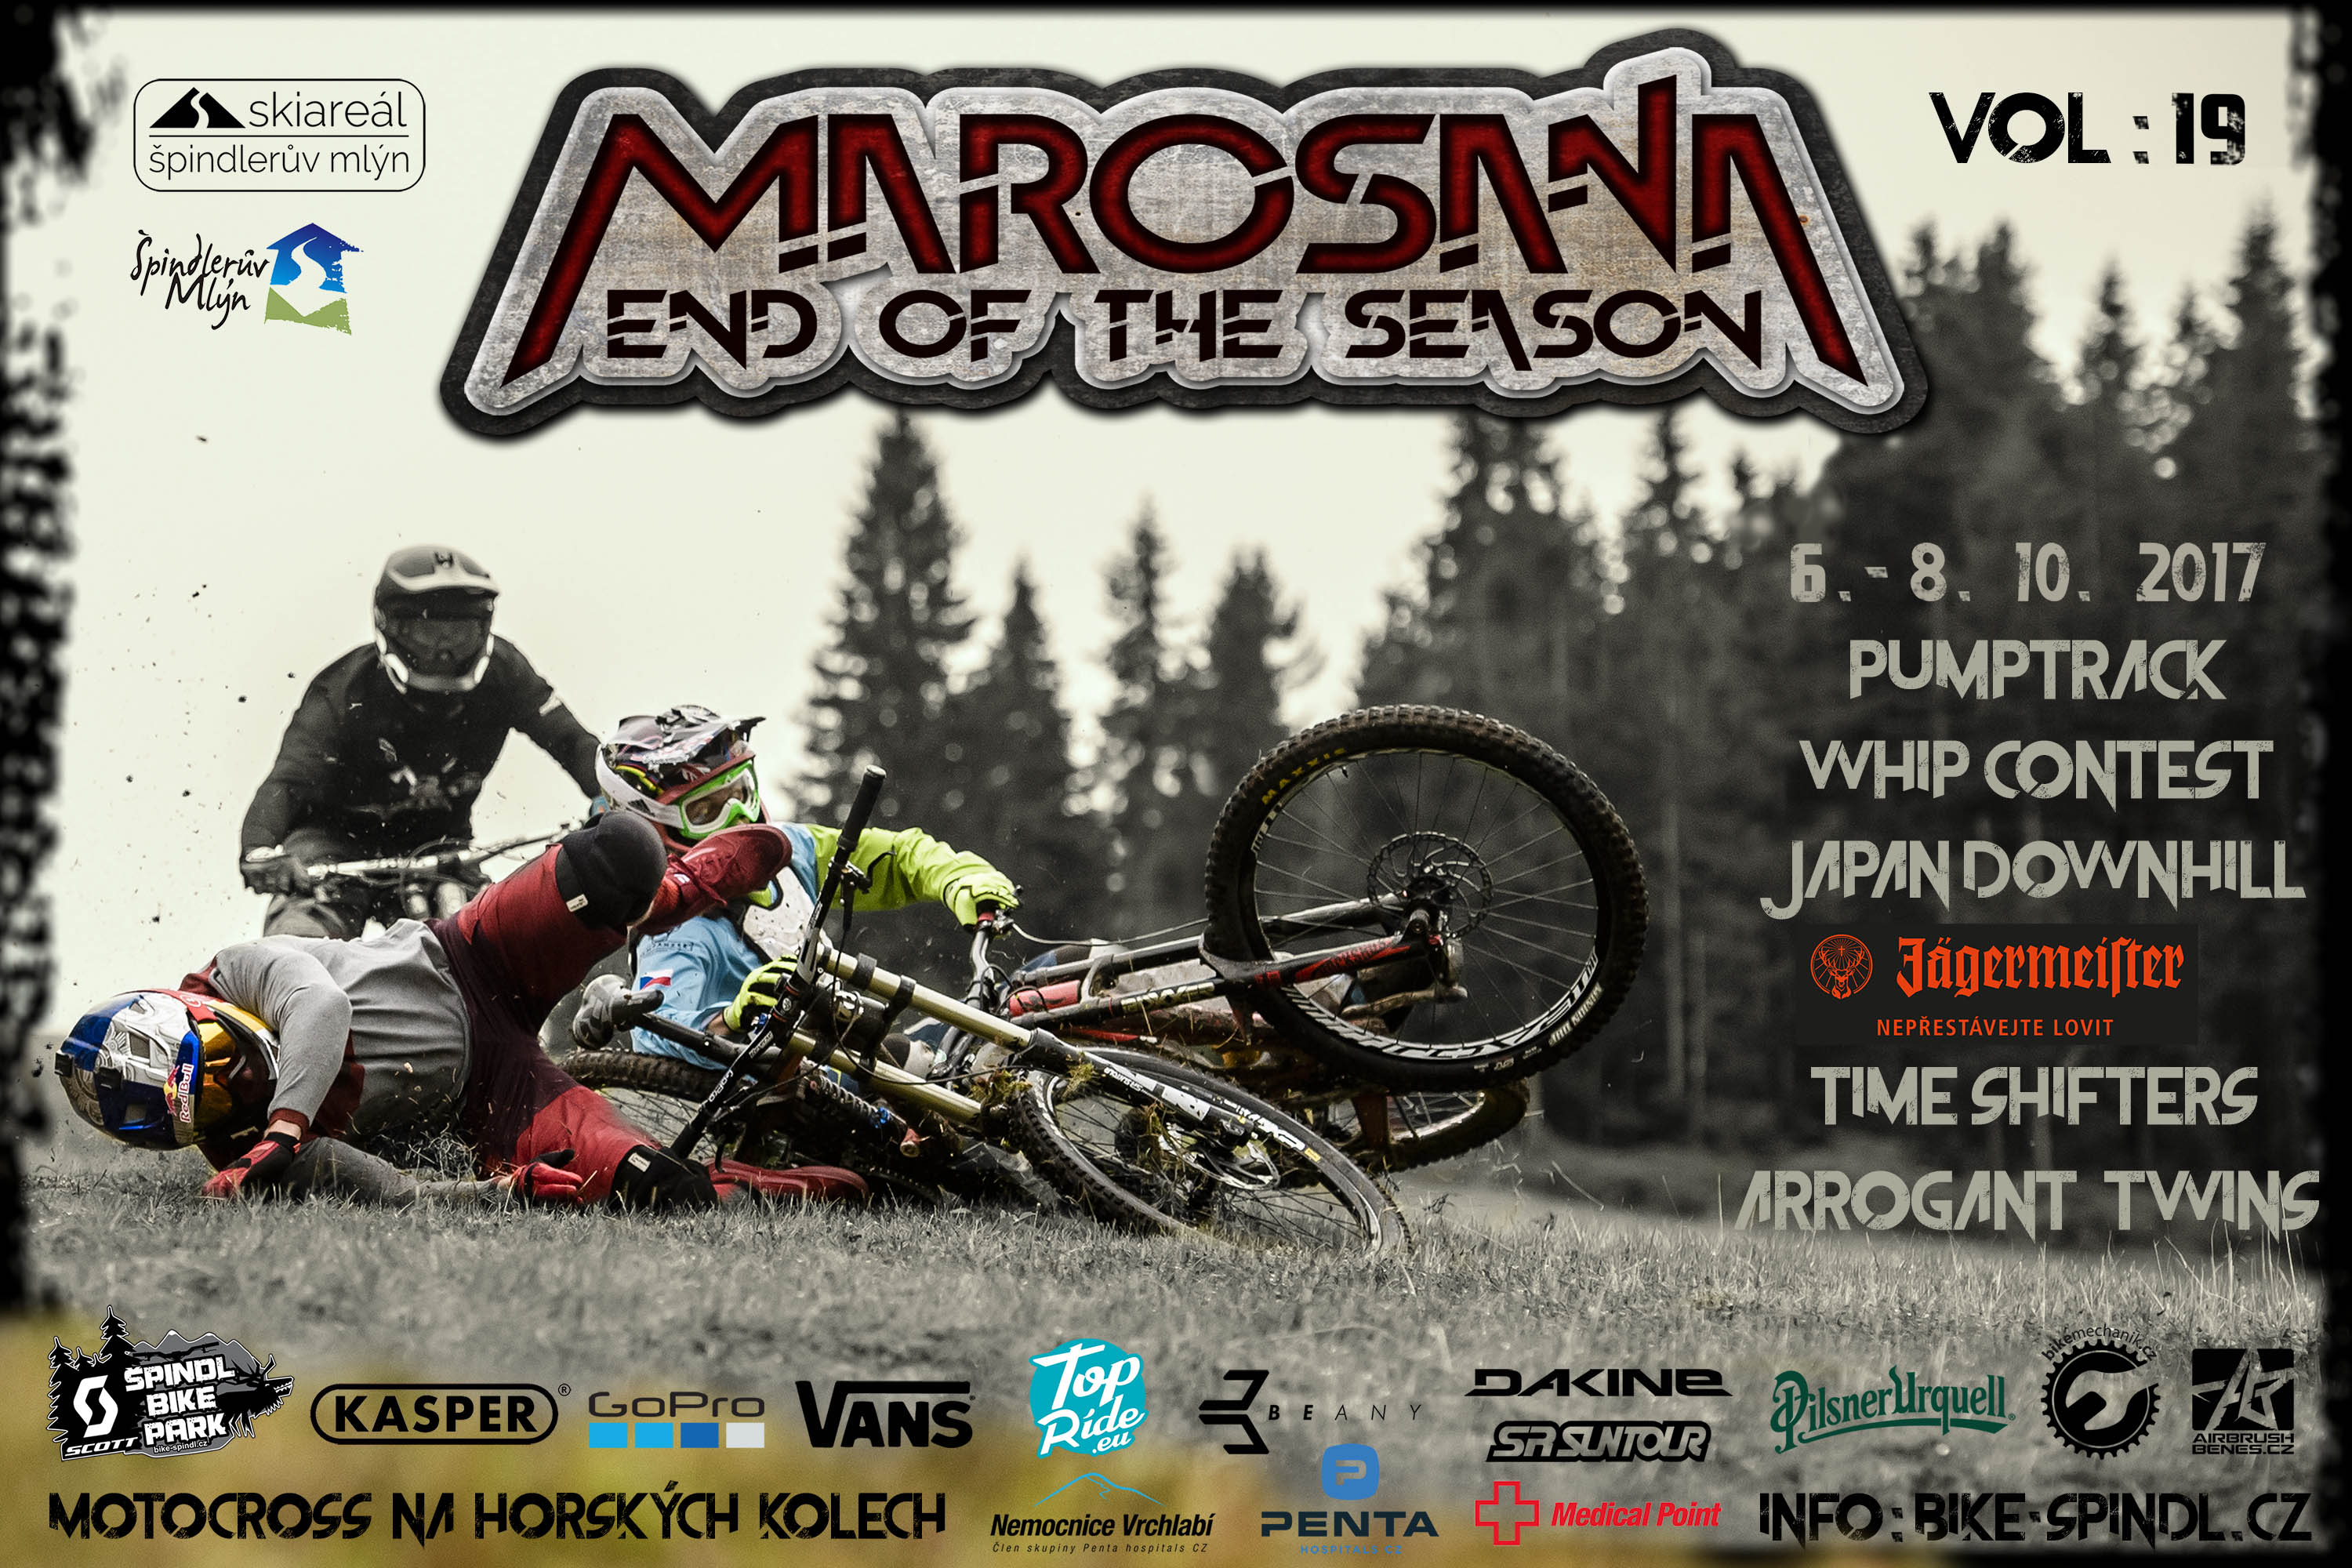 Marosana end of the season 2017